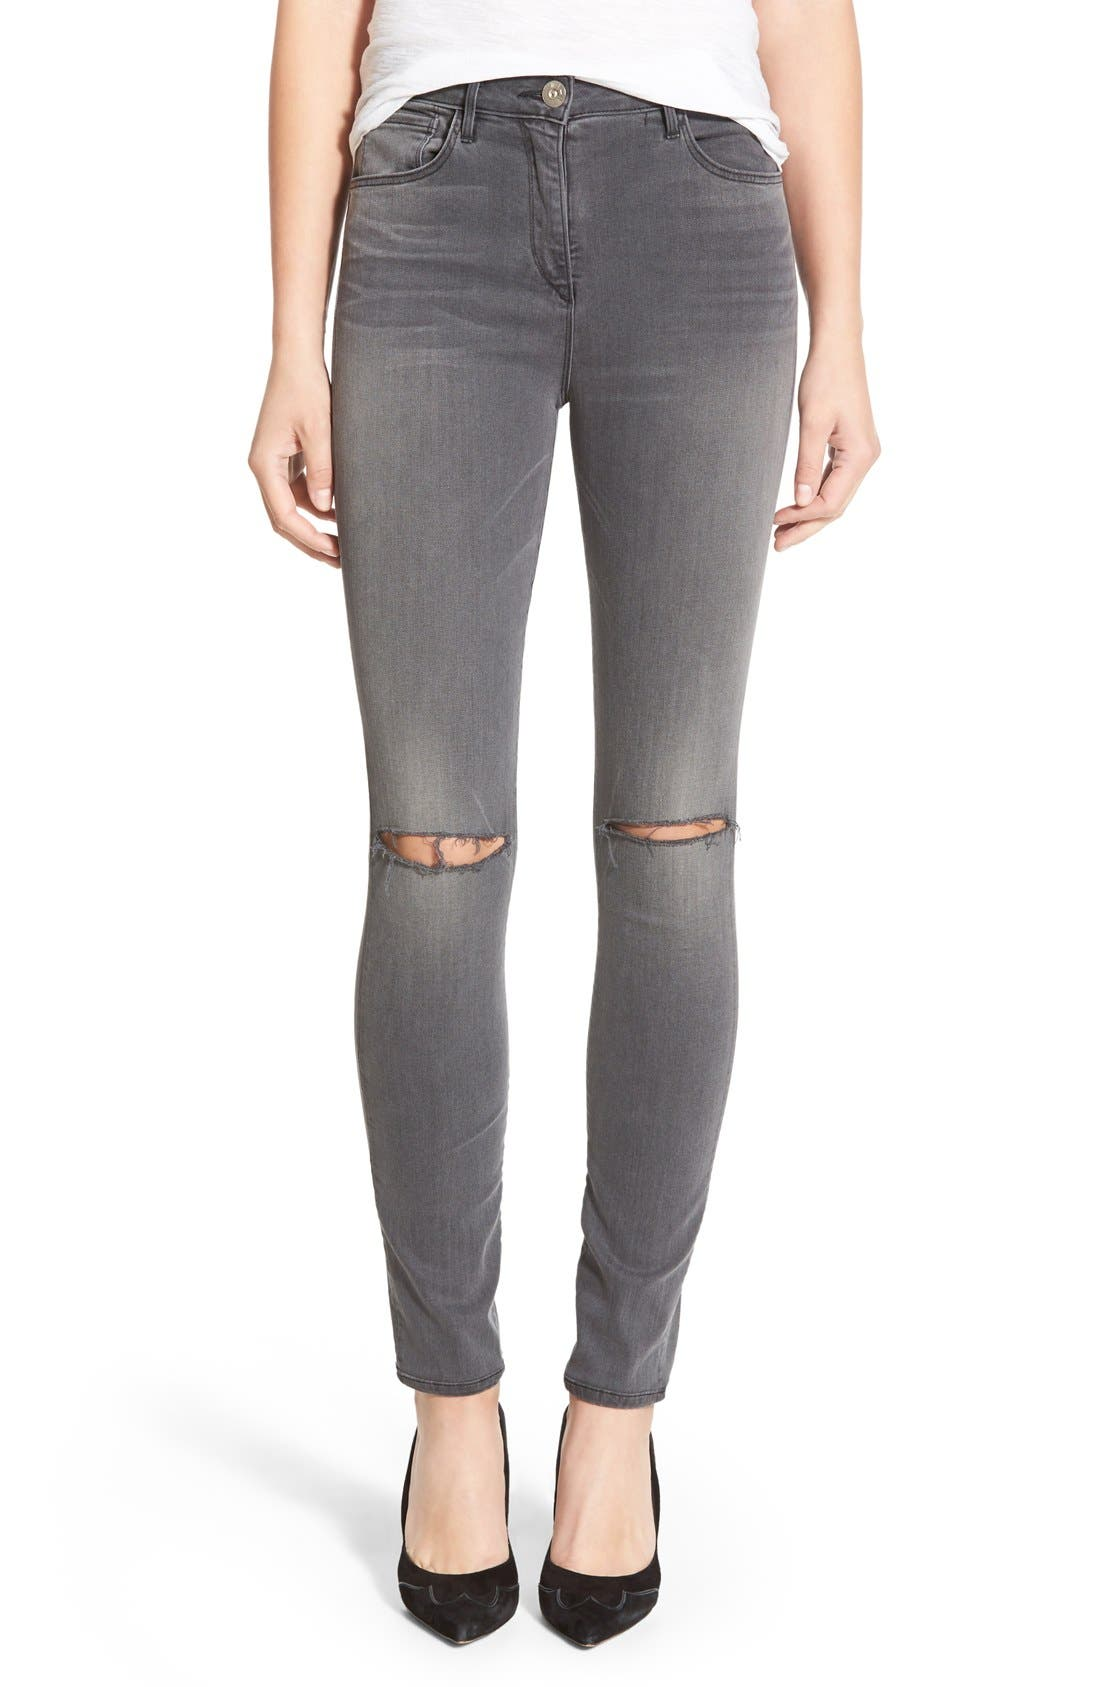 Main Image - 3x1 NYCHigh Rise Destroyed Skinny Jeans (Golf Grey Decon)